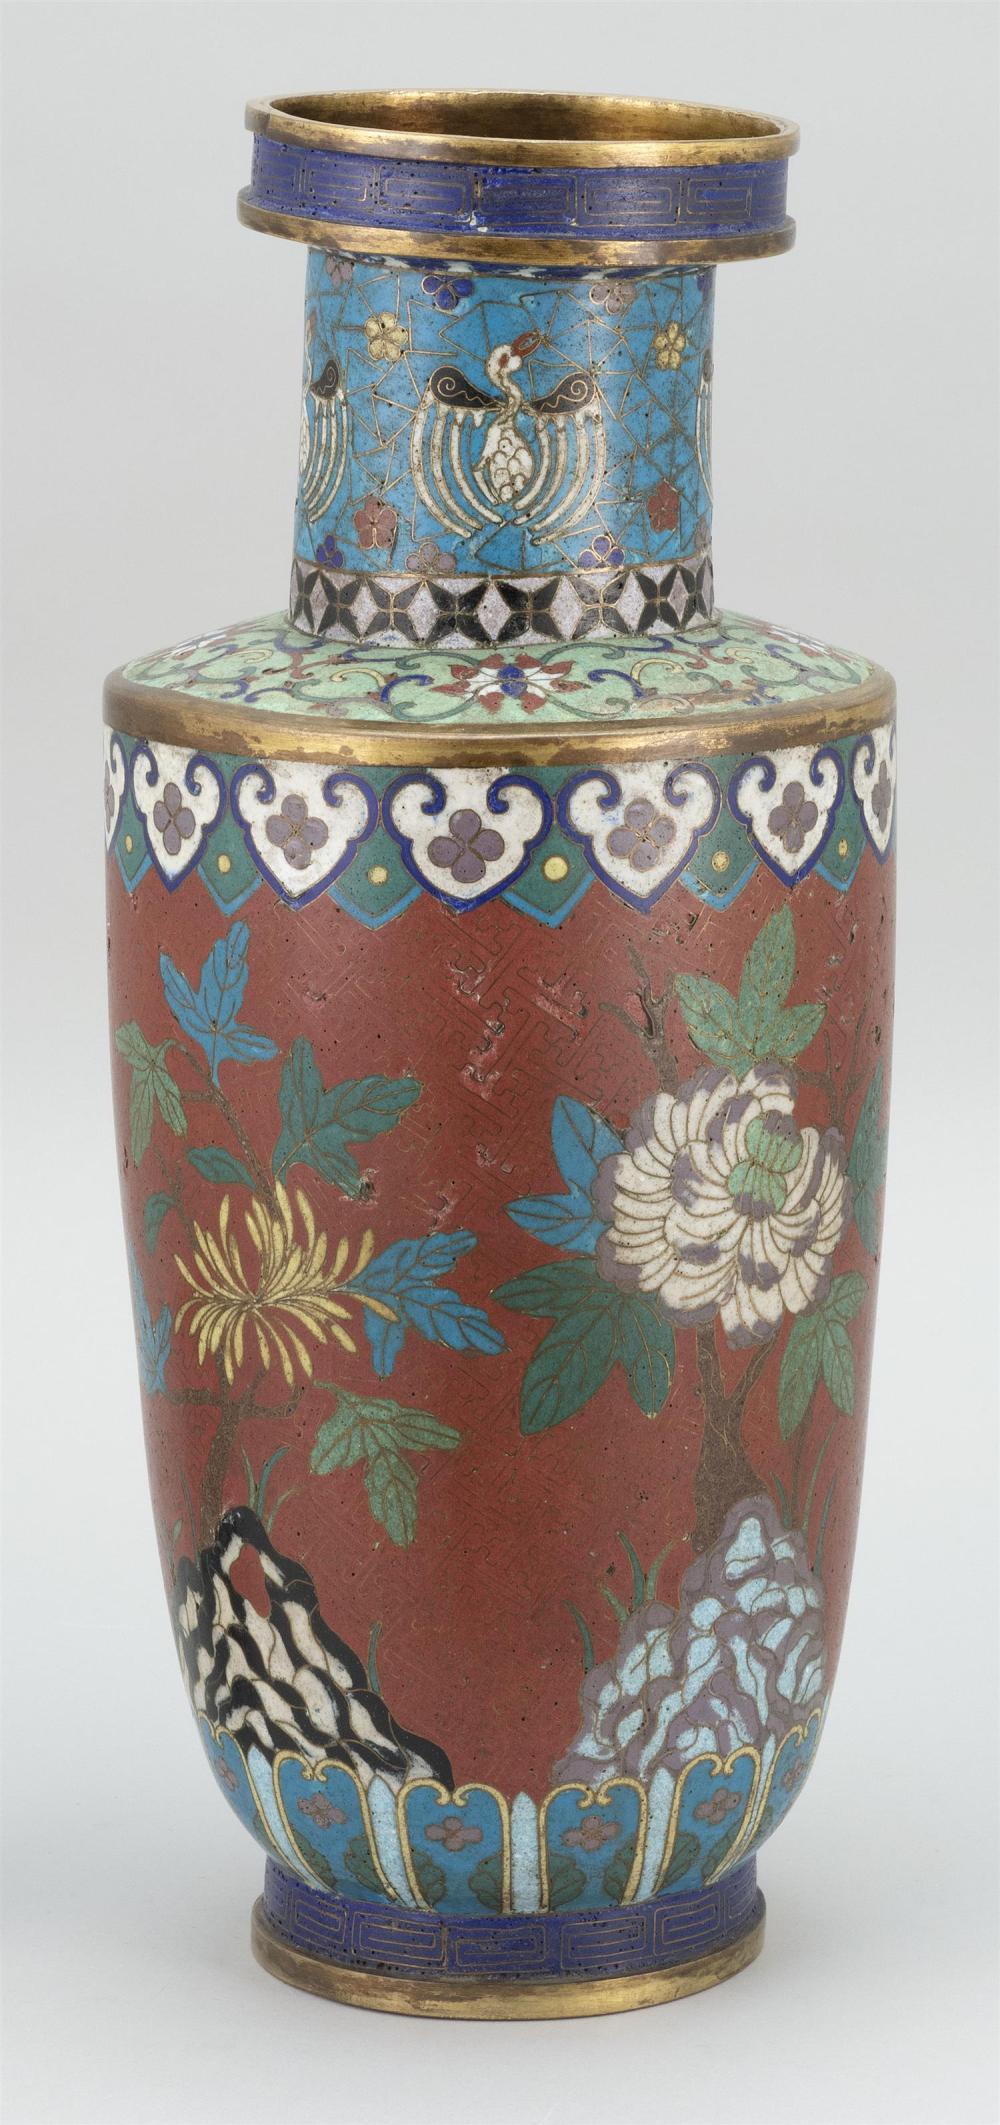 CHINESE CLOISONNÉ VASE In rouleau form, with stylized cranes at neck and a floral design on a brick red ground. Height 17